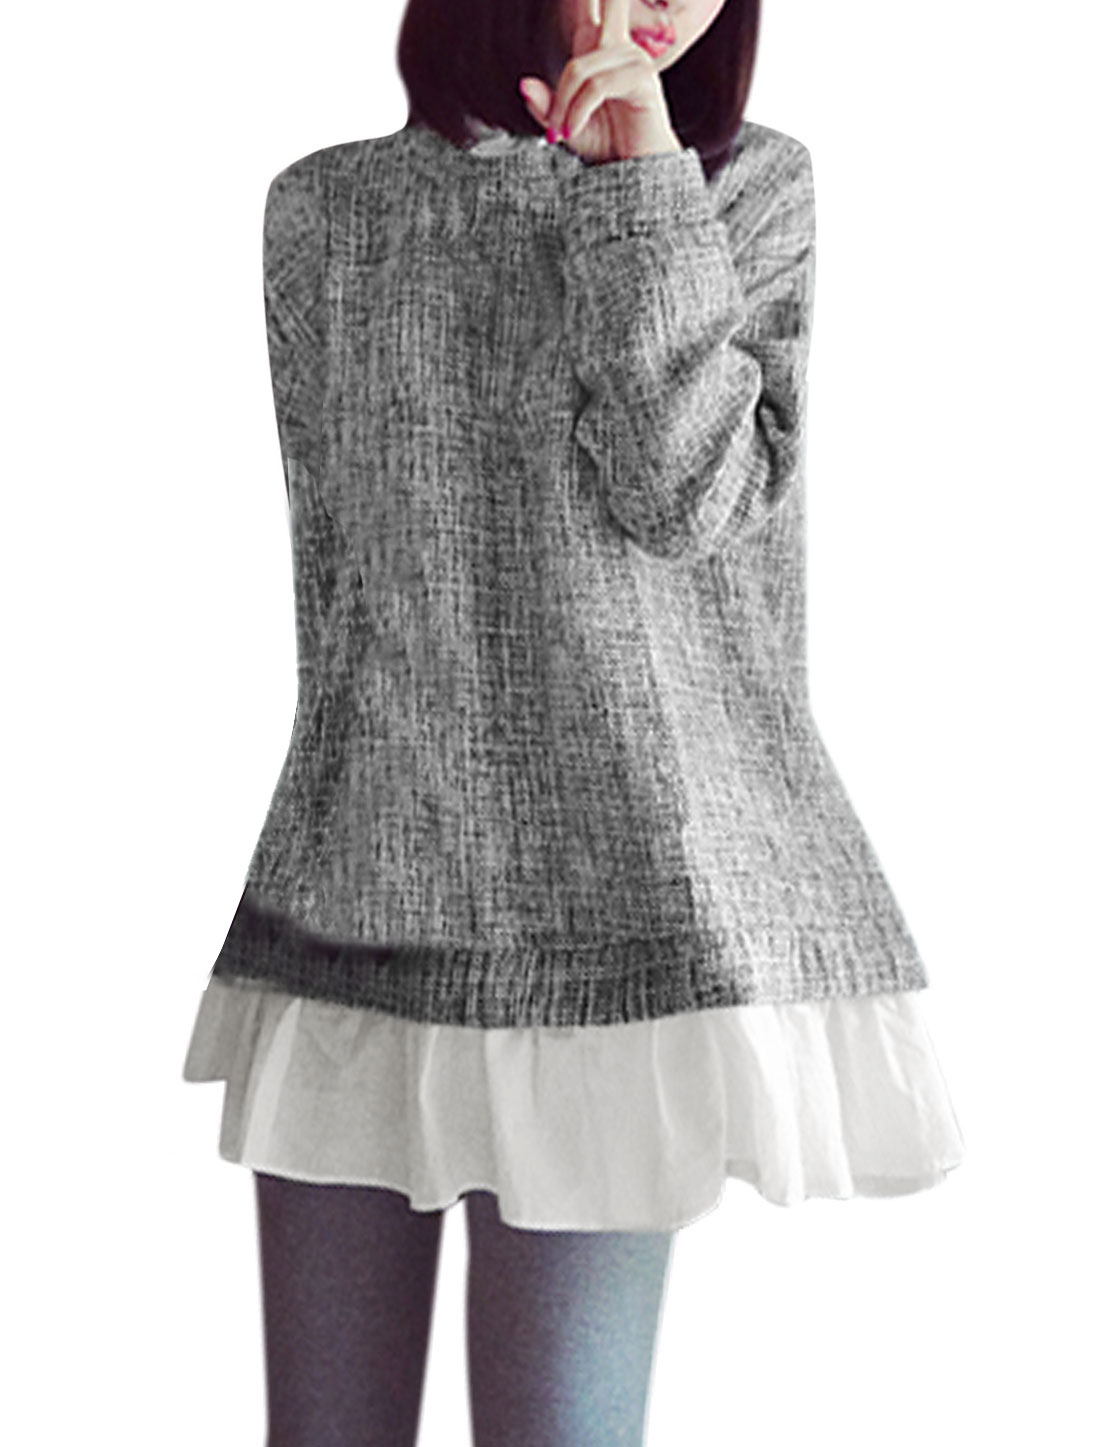 Women Ruffled Collar Panel Design Loose Tunic Top Gray S